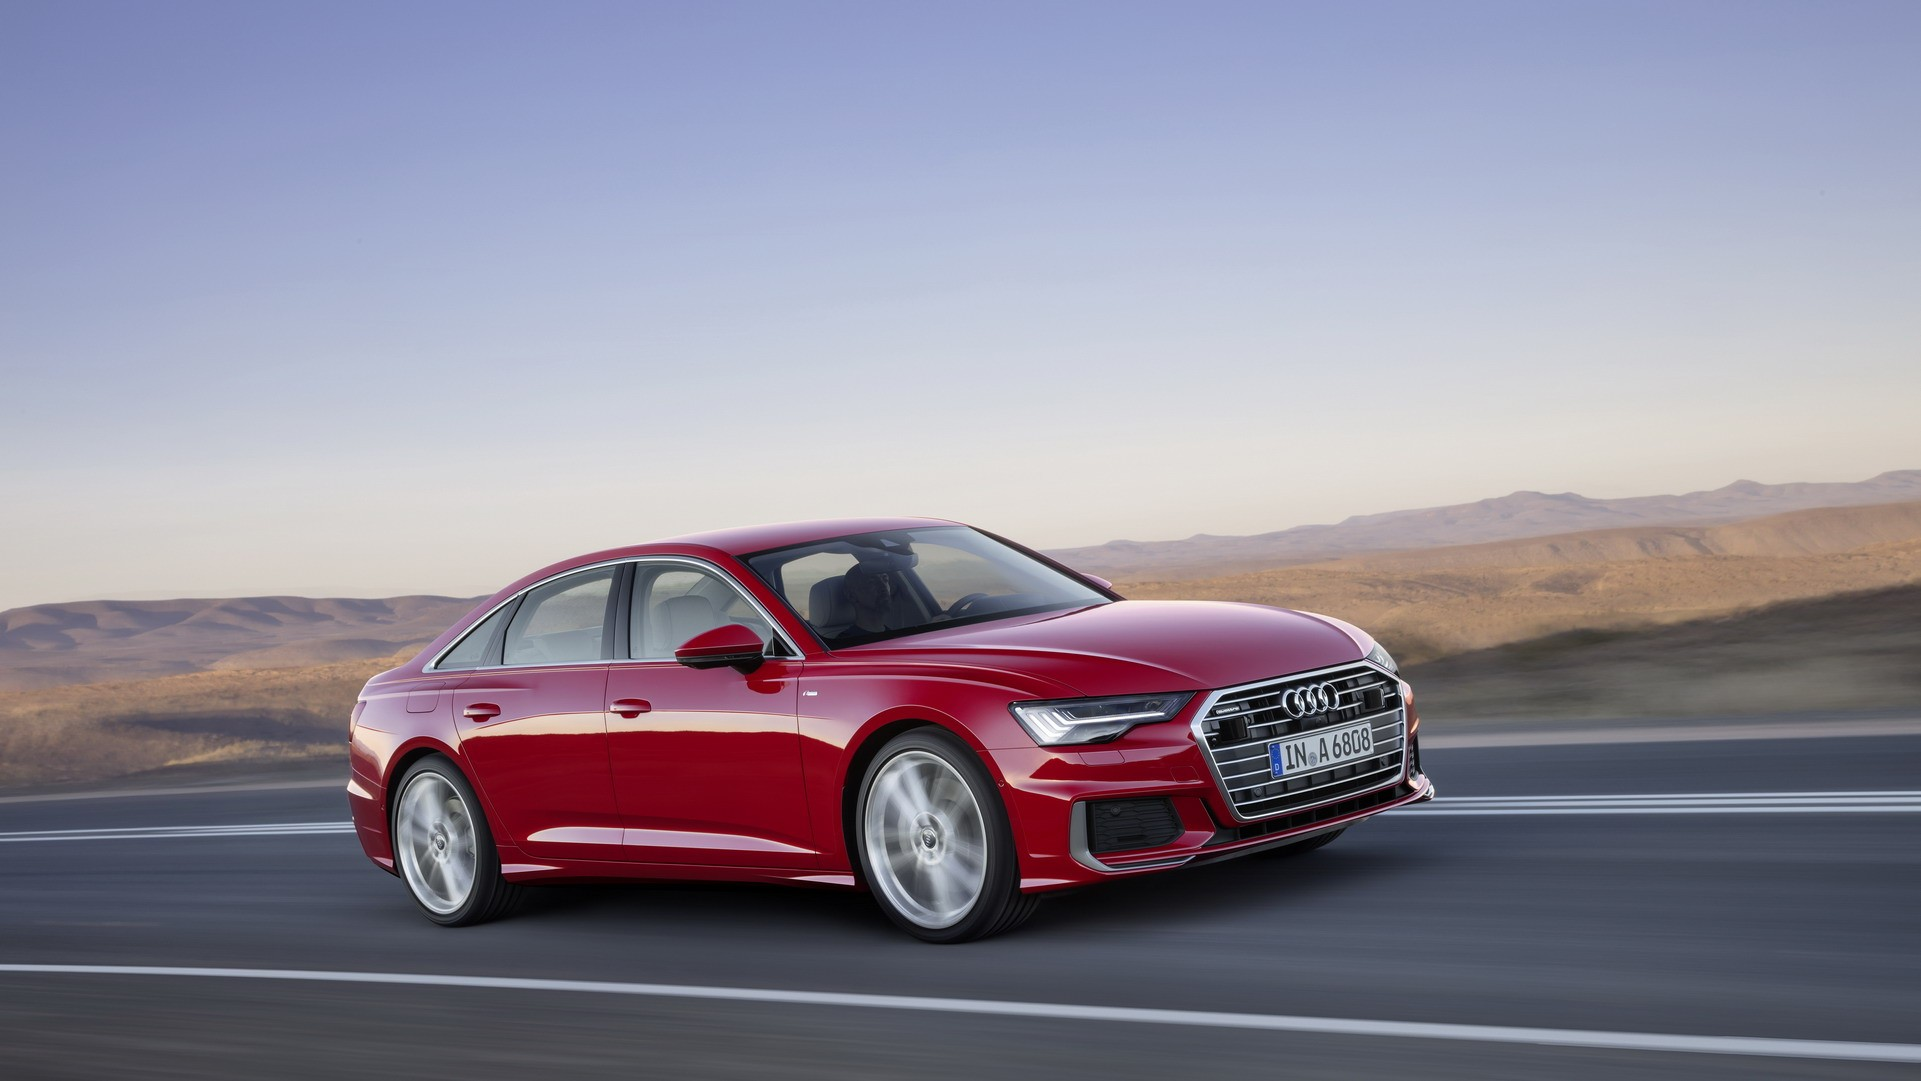 audi brand Audi has been majority owned by volkswagen for more than 40 years the audi brand delivered 19 million cars in 2017, down 12% from the prior year.